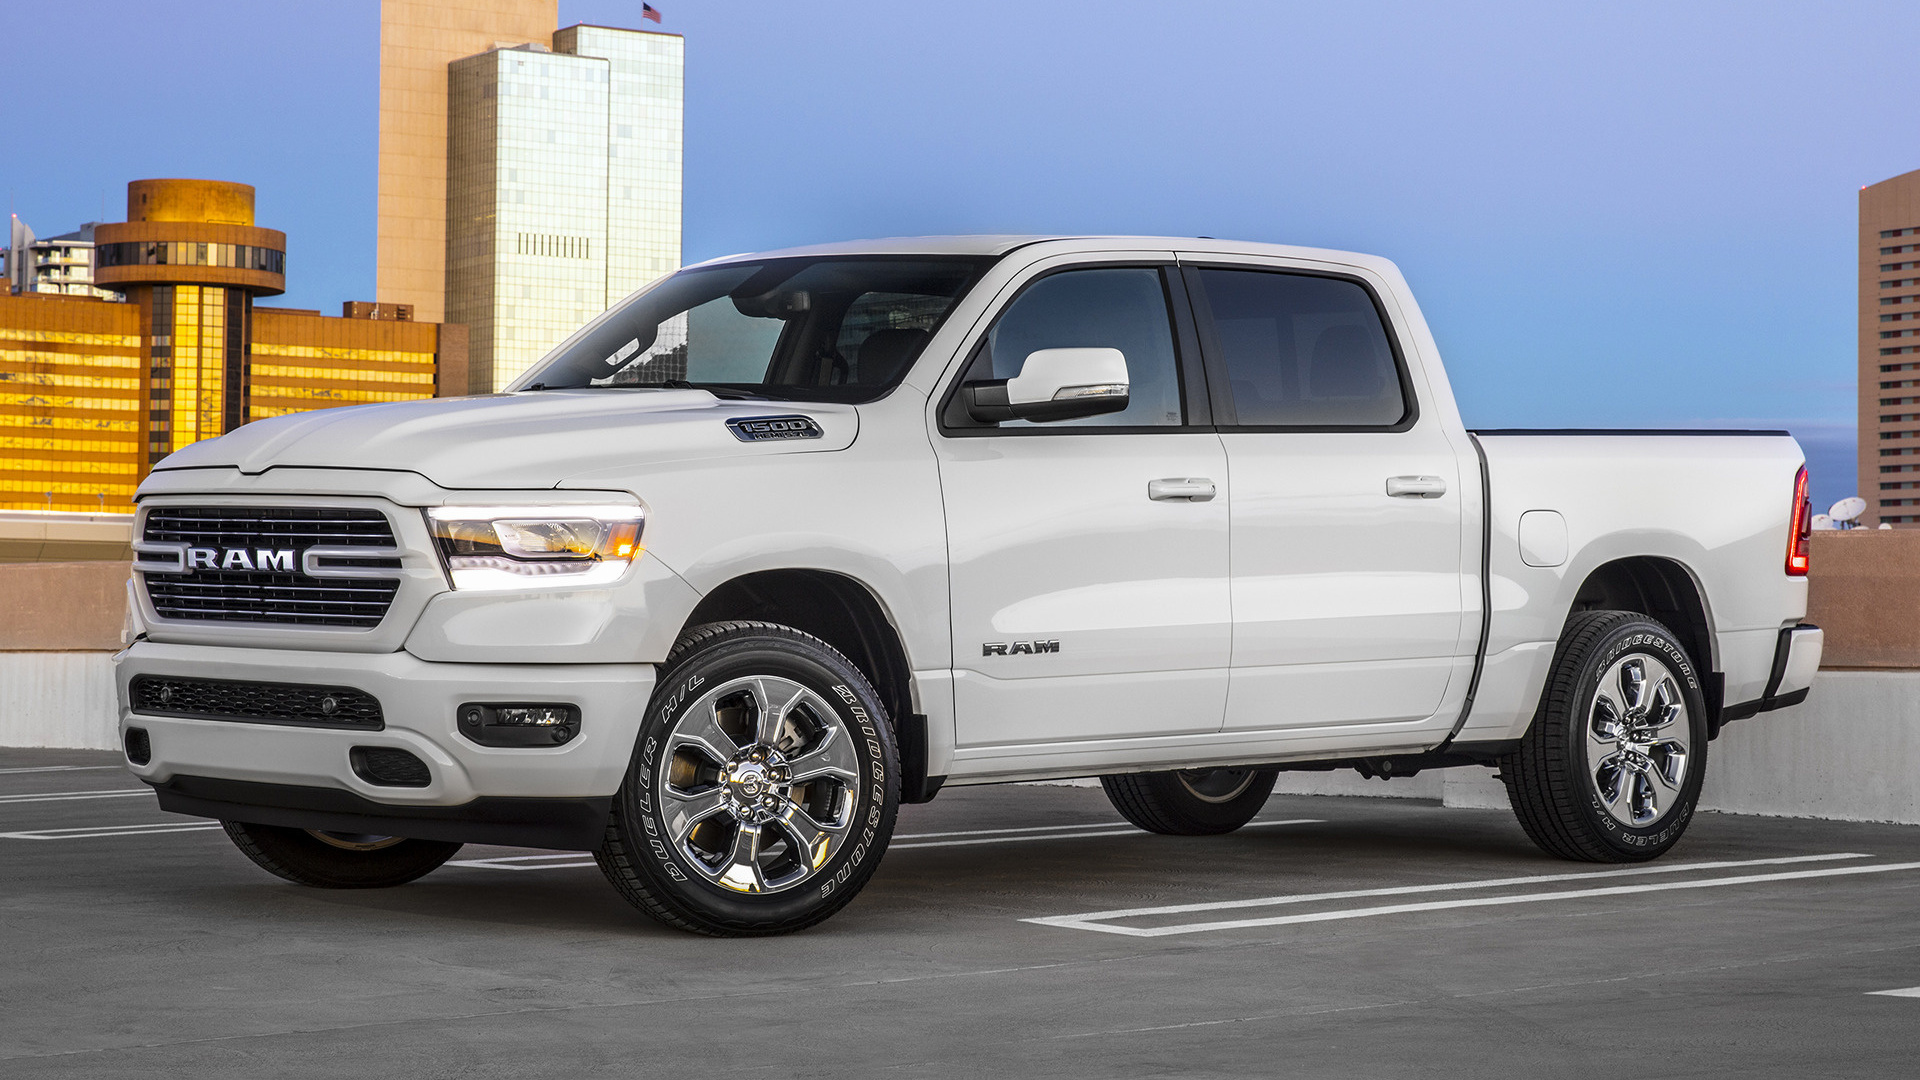 Ram Big Horn >> 2019 Ram 1500 Big Horn Crew Cab Sport Appearance Package [Short] - Wallpapers and HD Images ...